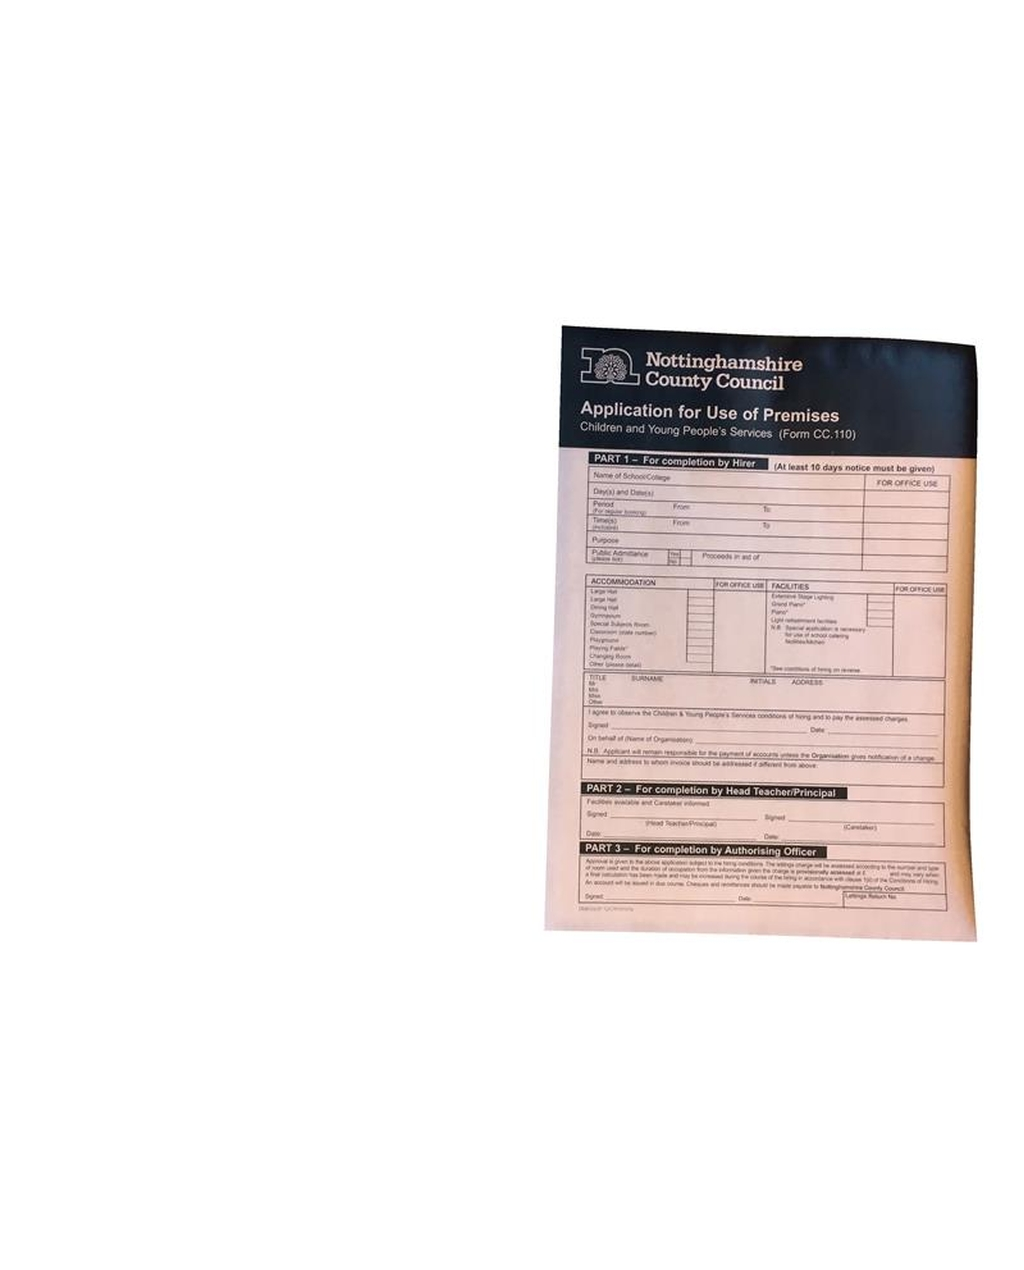 Form for use of premises cc.110 PK 150